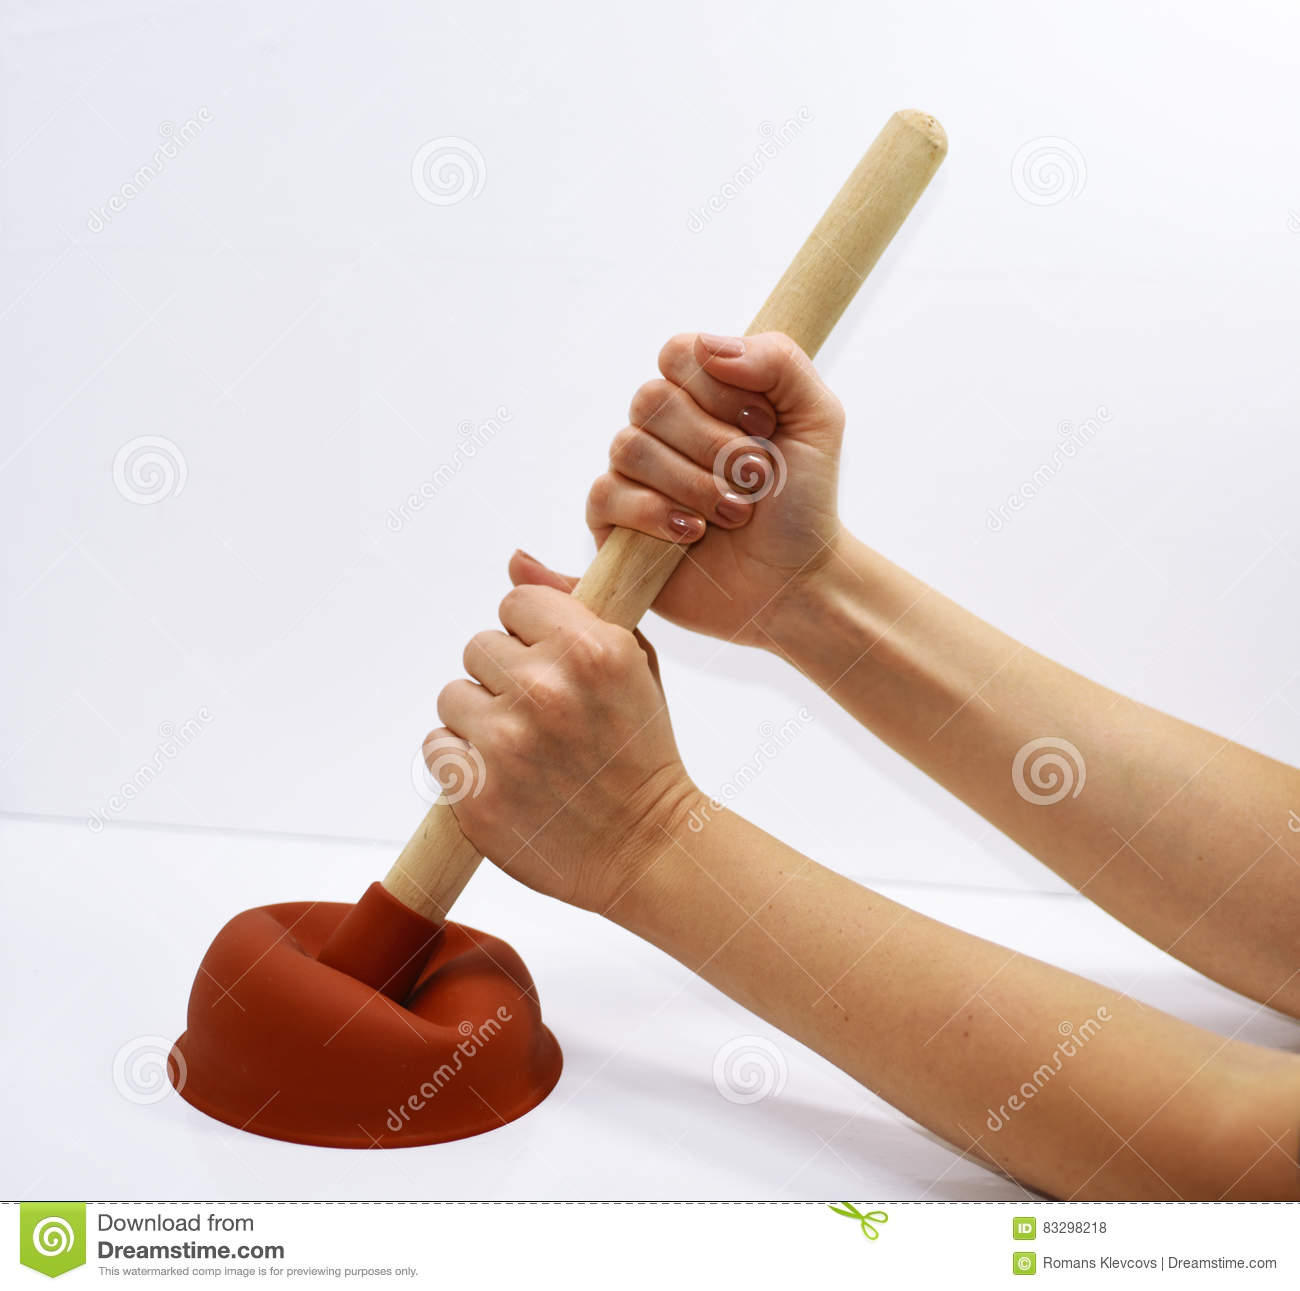 Woman with plunger trying to remove clogged sinks.